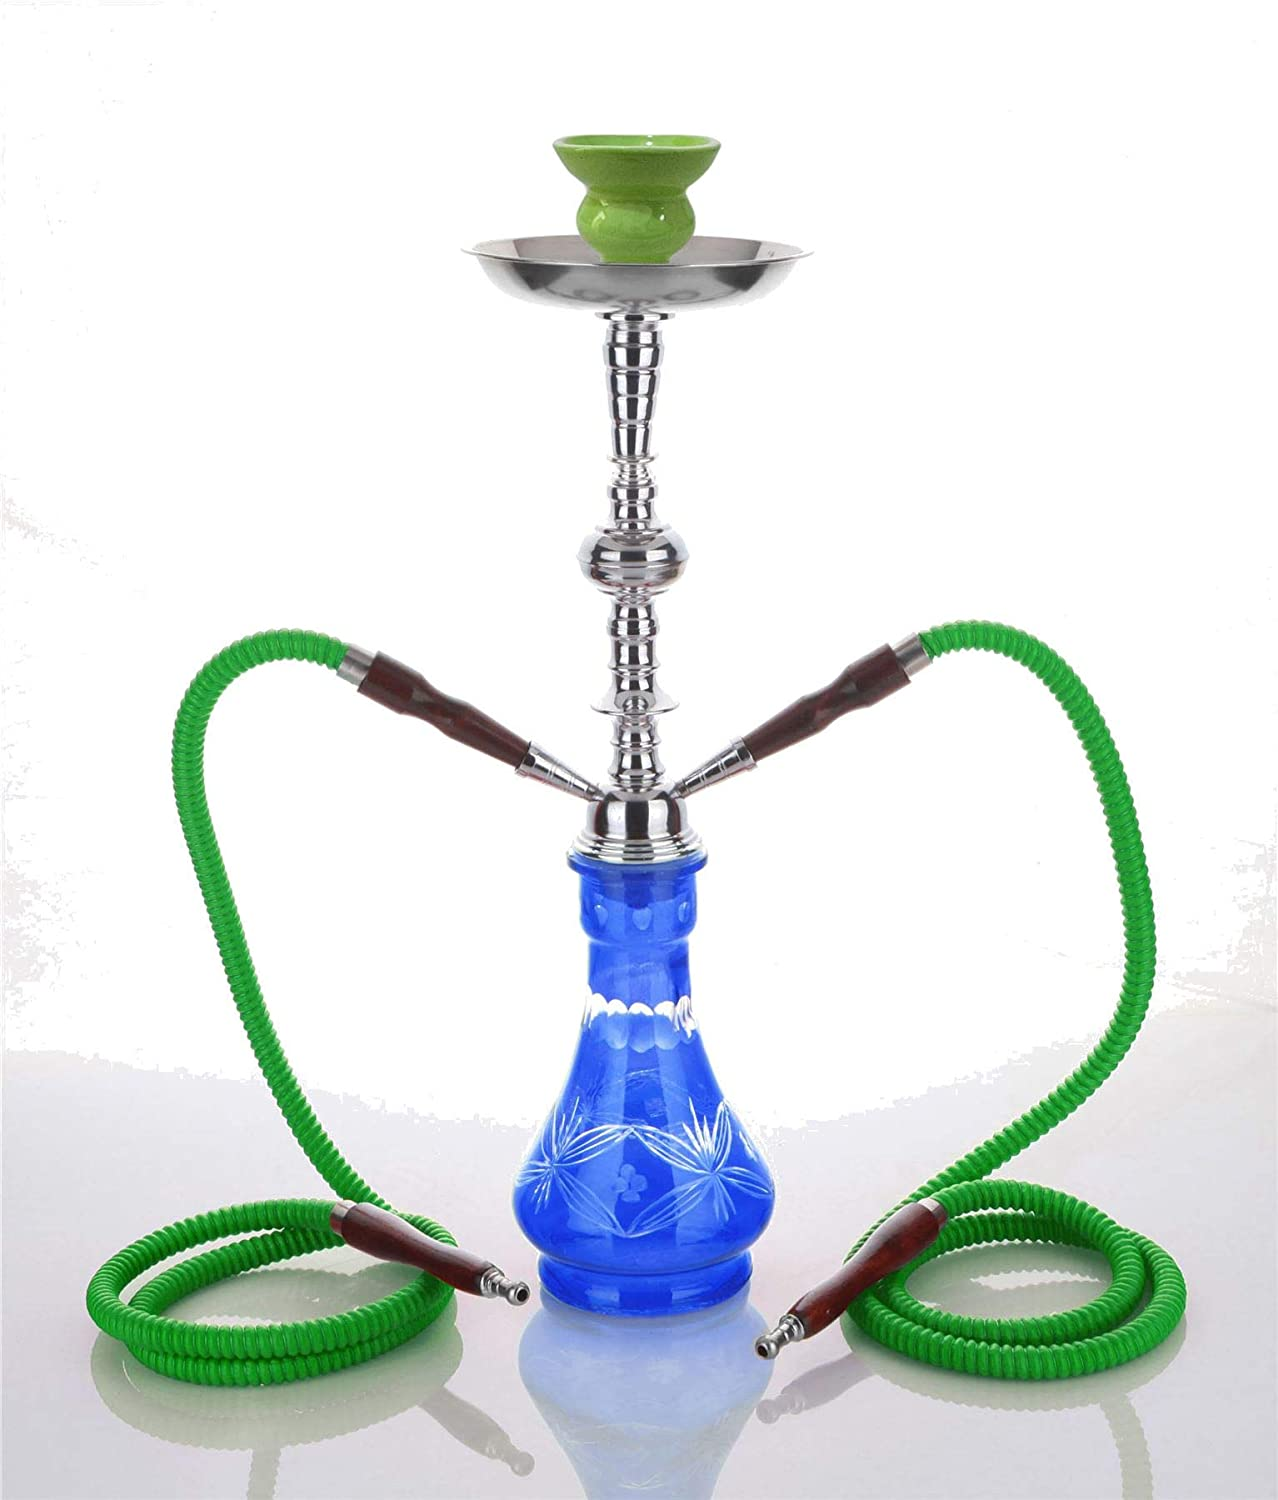 Medium Green 2 Hose hooka - no Tobacco no Nicotine Shisha Pipe Smoking sheesha - no Tobacco no Nicotine